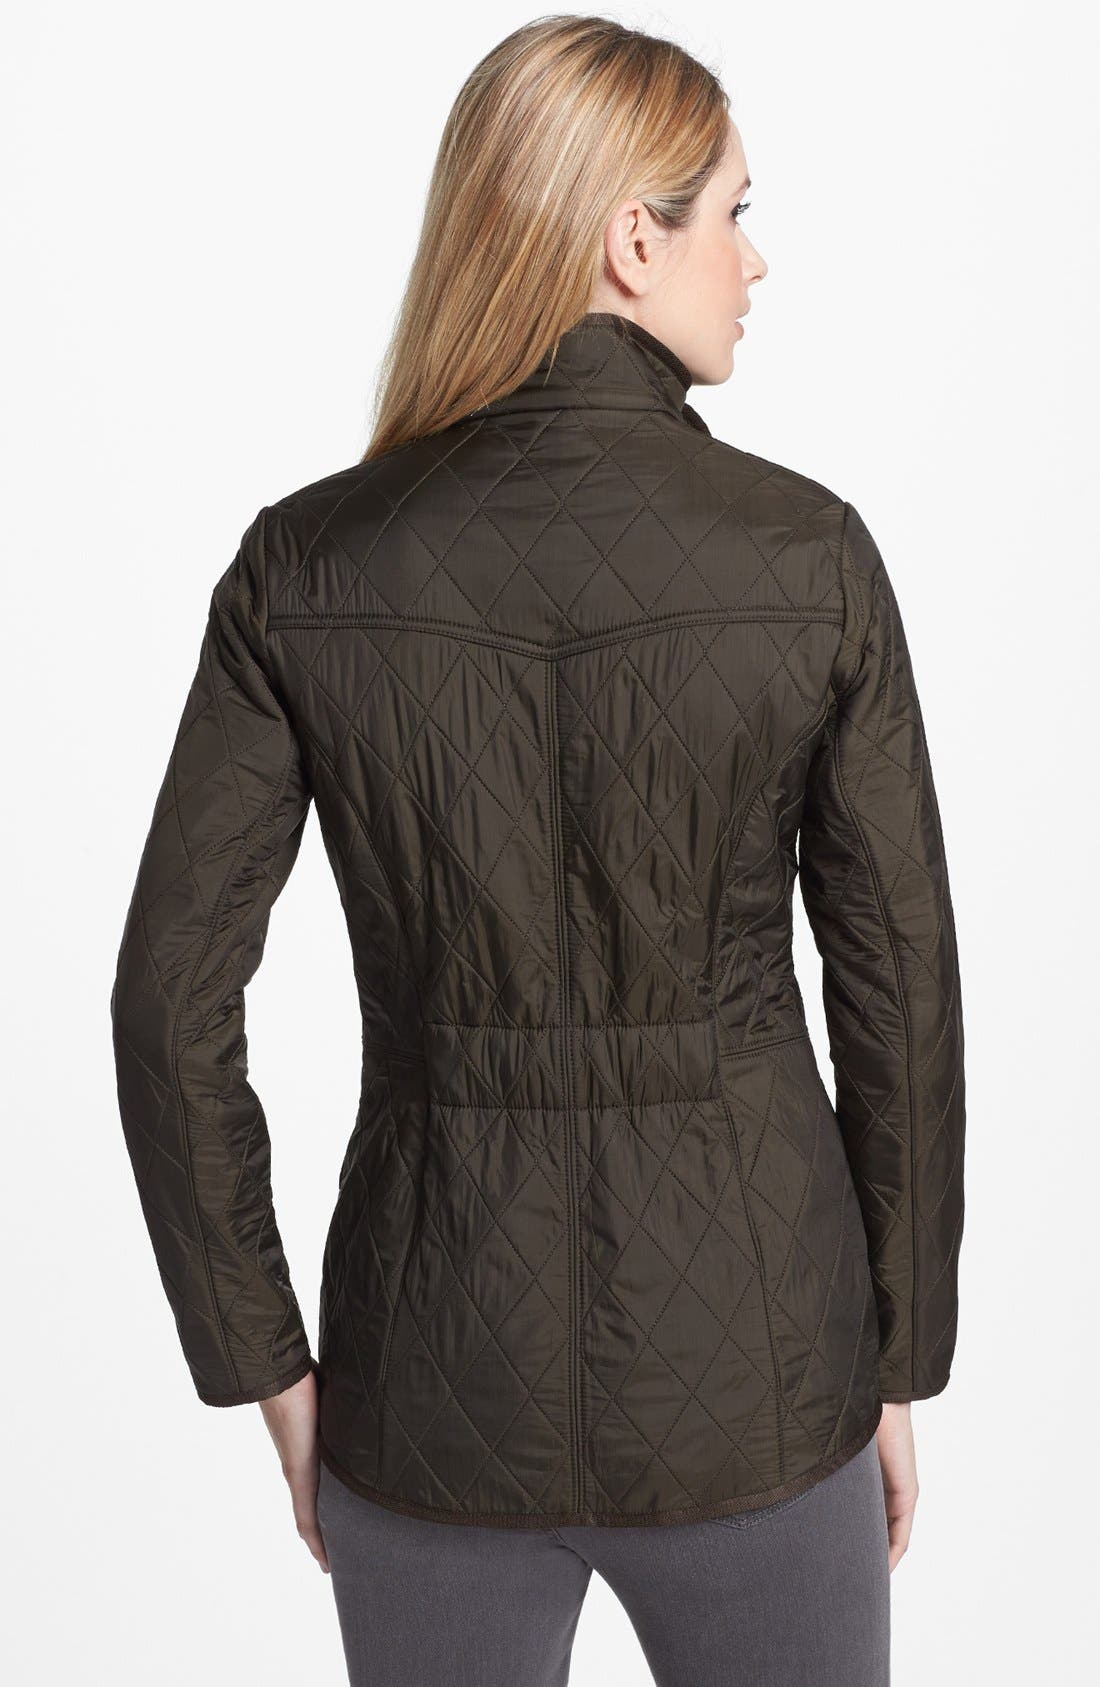 BARBOUR, 'Cavalry' Quilted Jacket, Alternate thumbnail 8, color, DARK OLIVE/ OLIVE